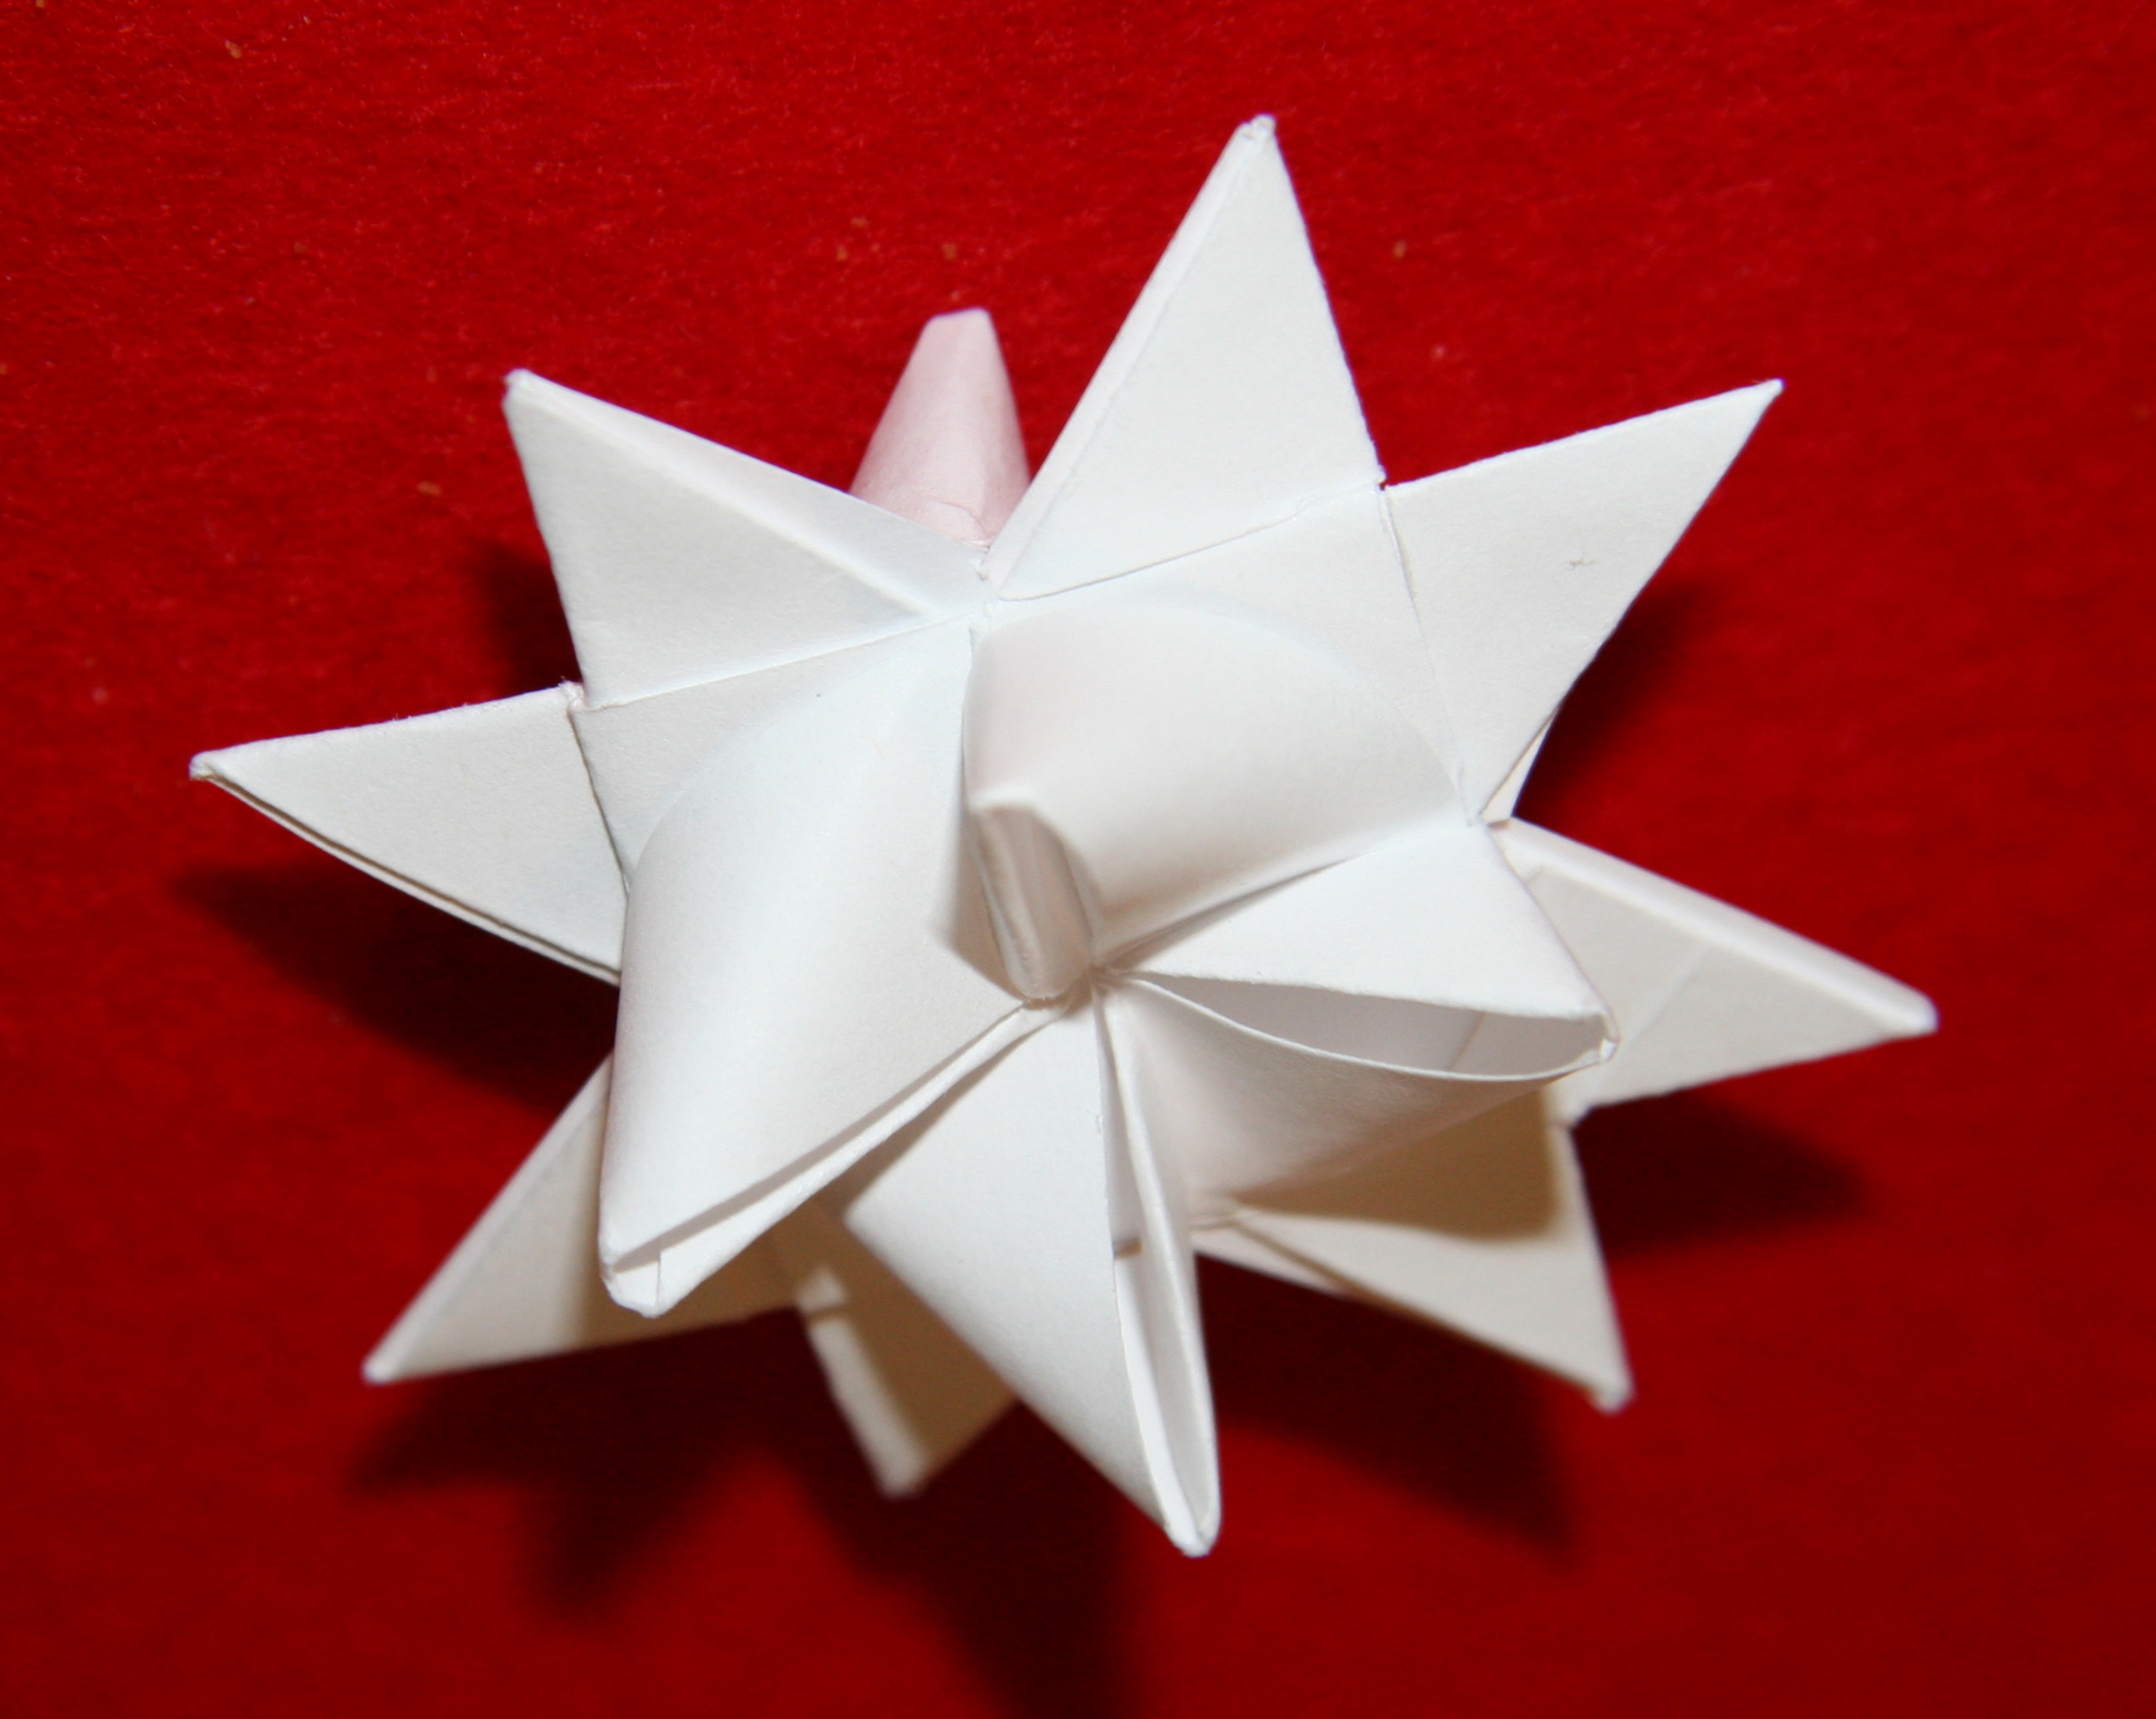 File:PaperStar.jpg - Wikimedia Commons